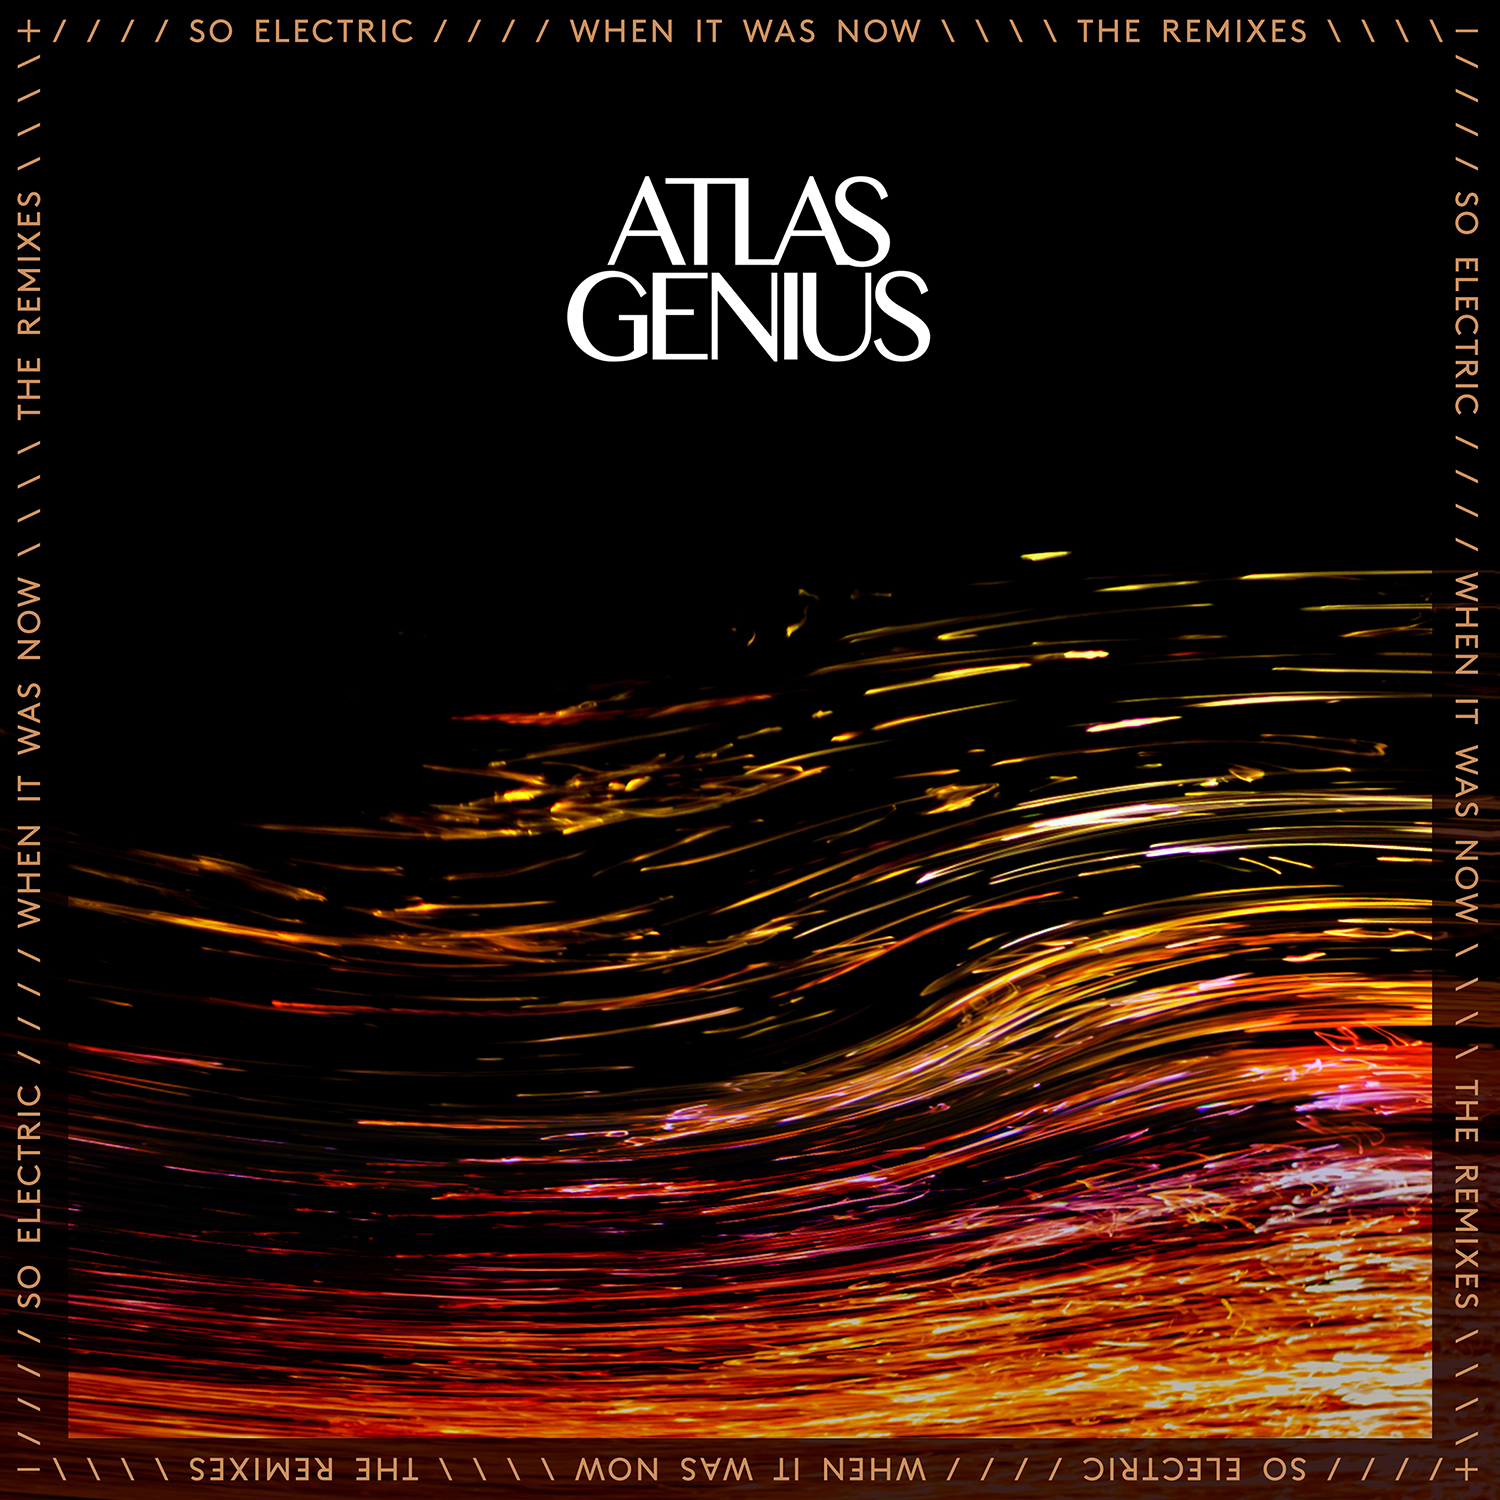 AG_SoElectric-Cover.jpg